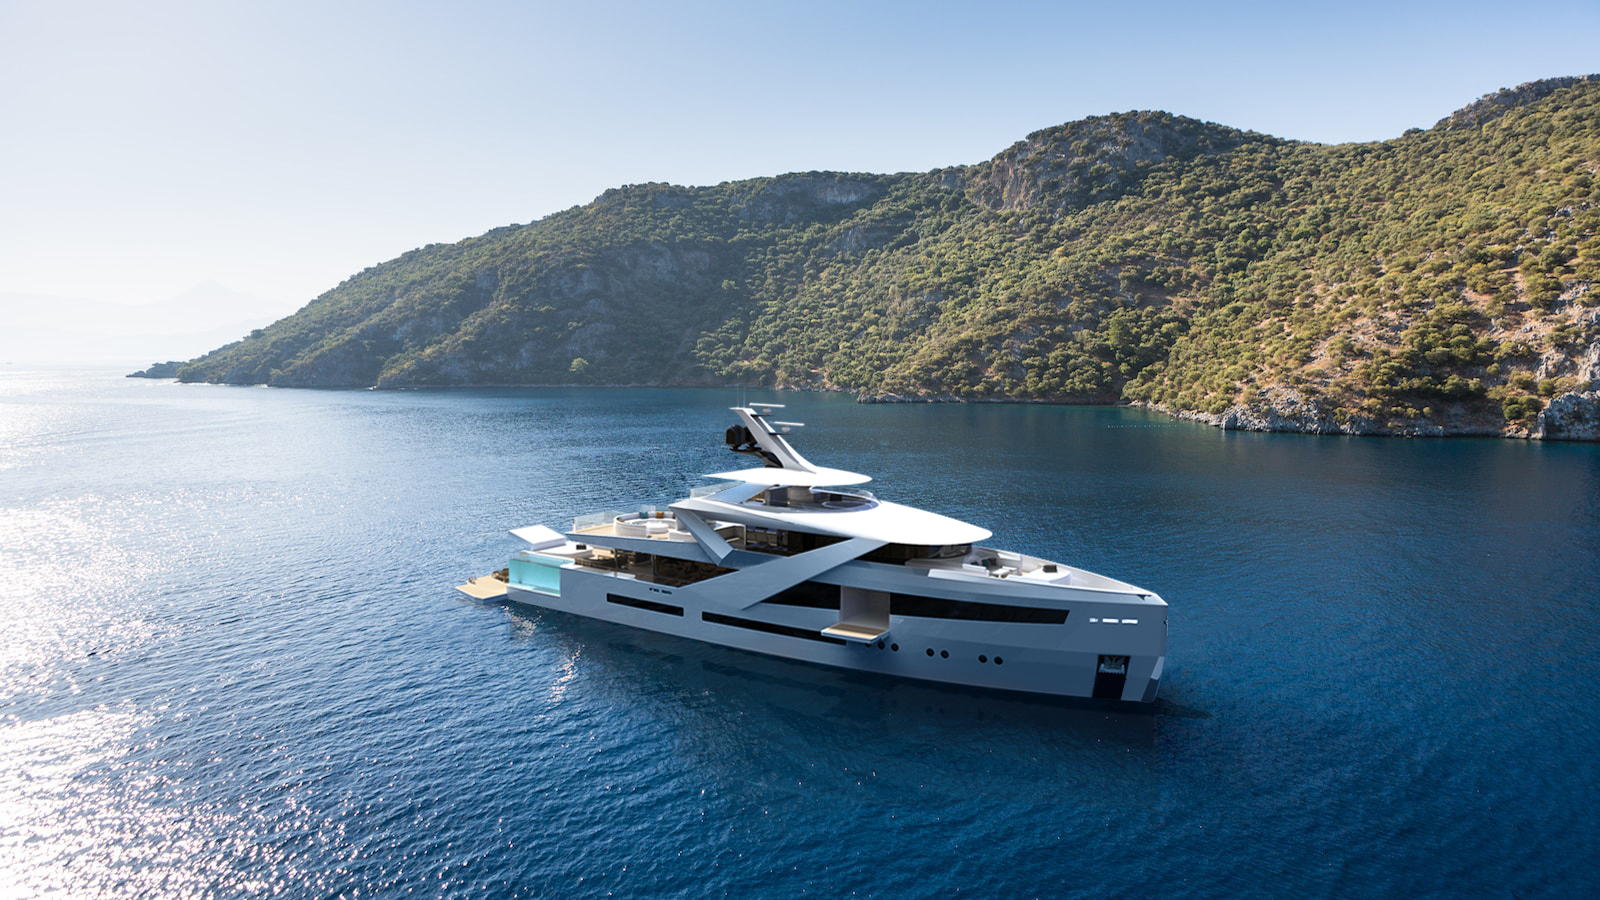 Concept yacht Zenith at anchor